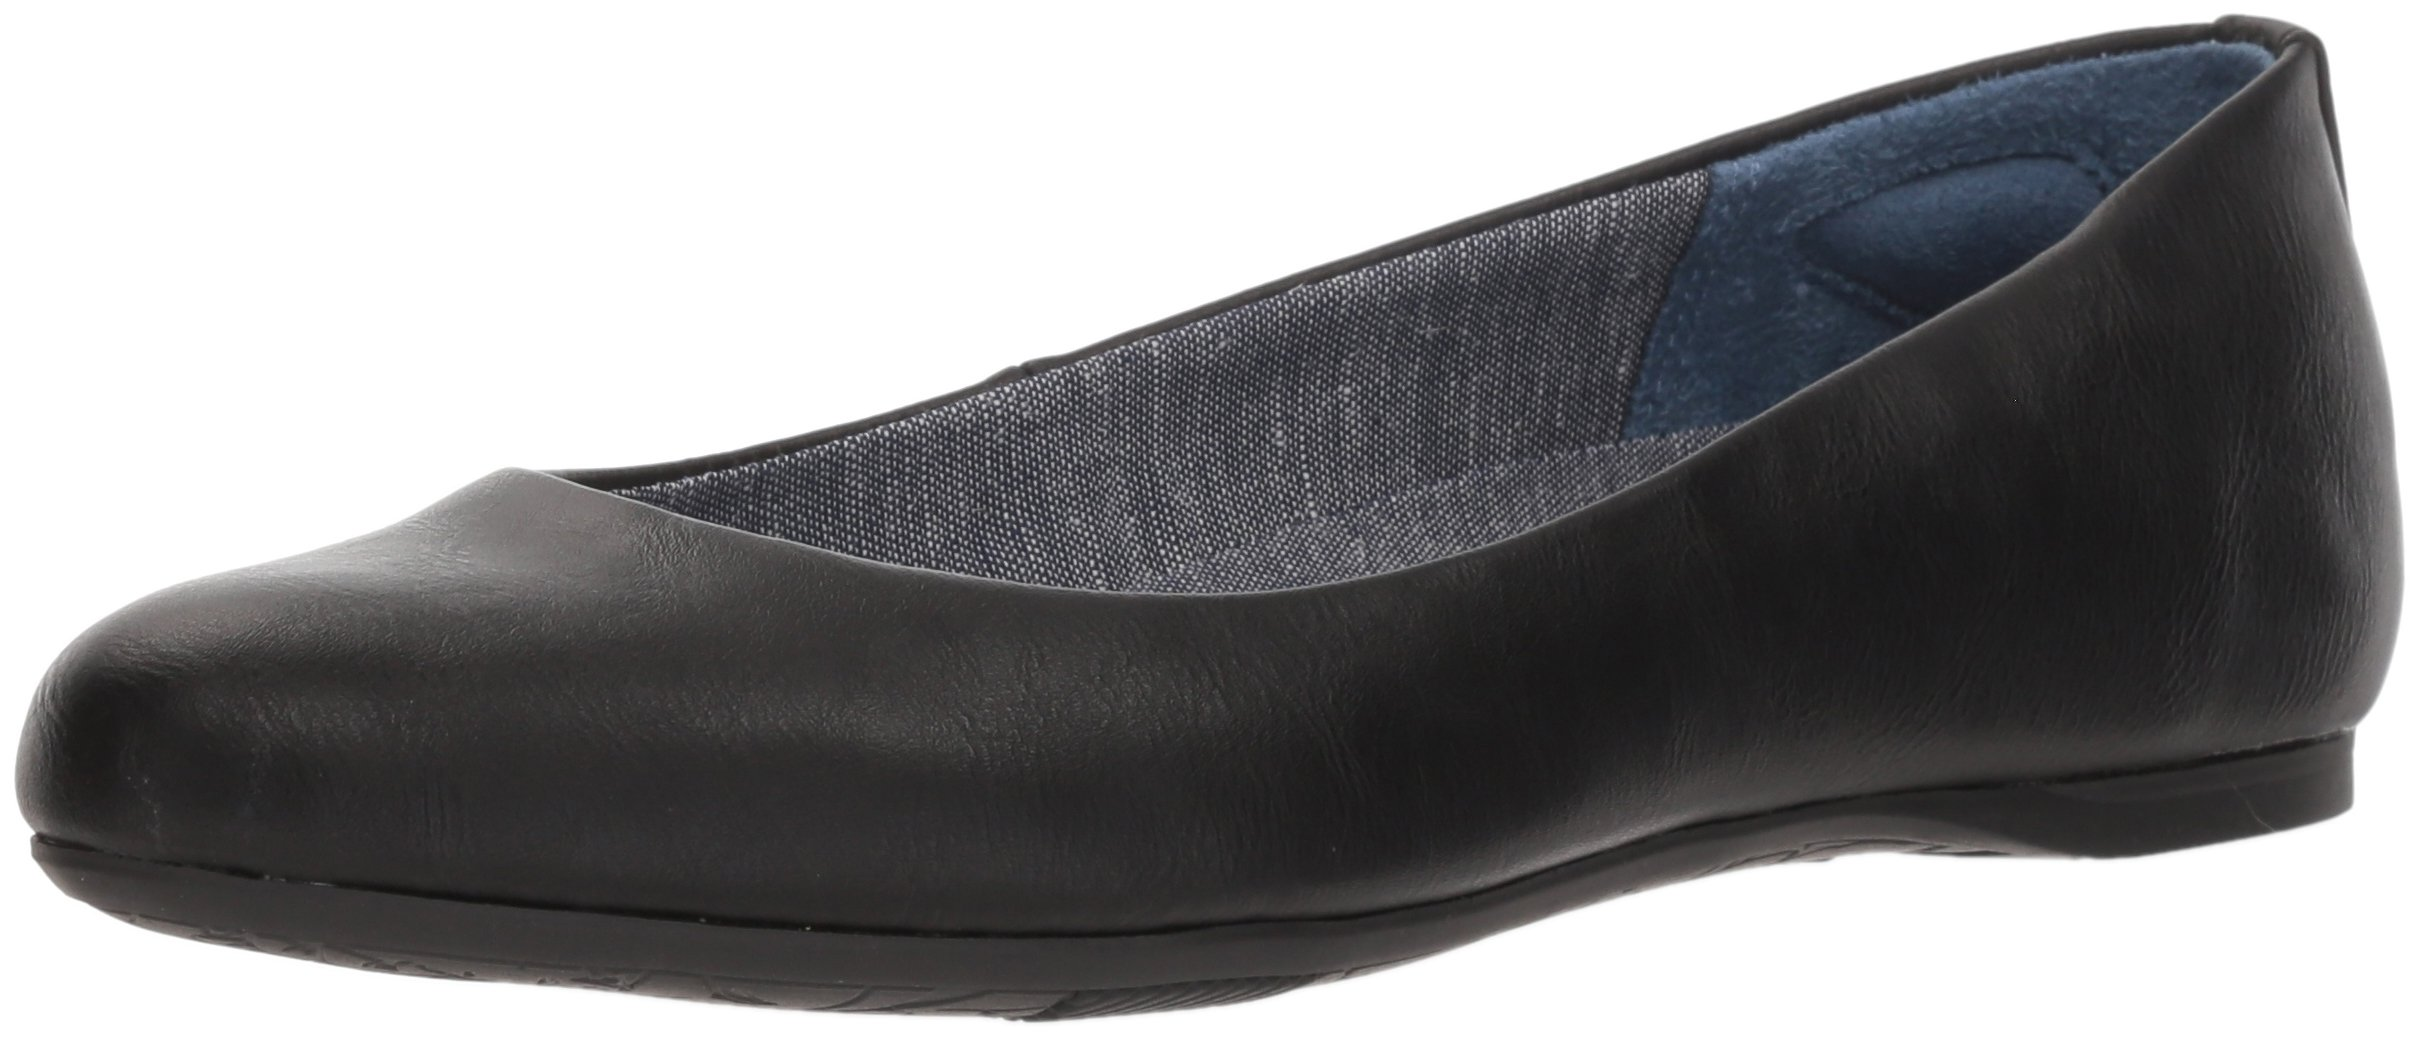 Dr. Scholl's Shoes Women's Giorgie Ballet Flat, Black Smooth, 8.5 M US